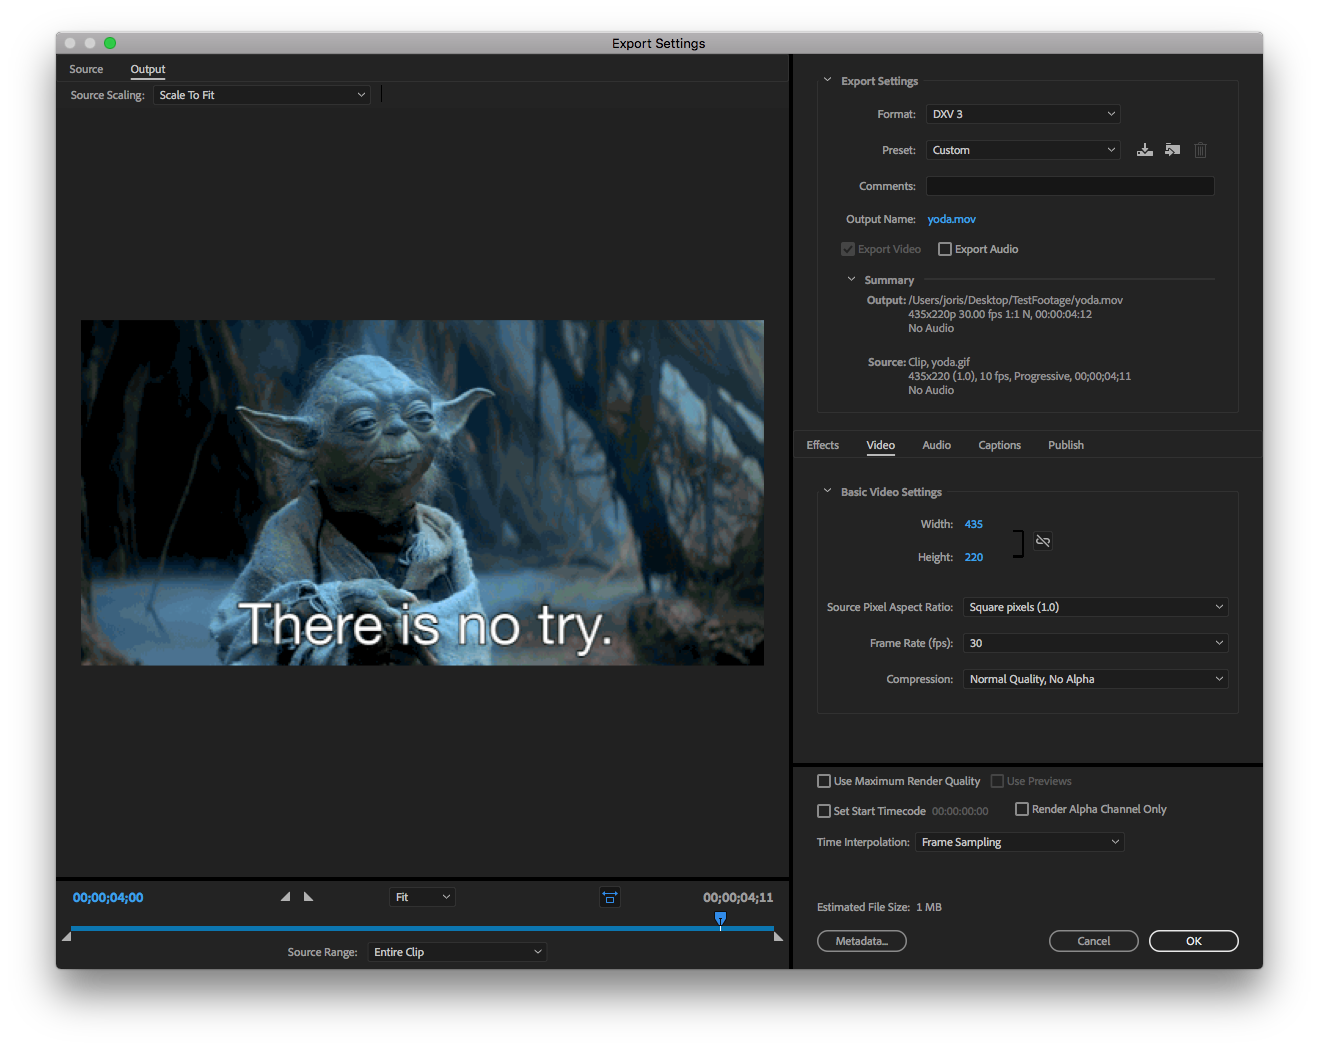 Rendering to DXV.